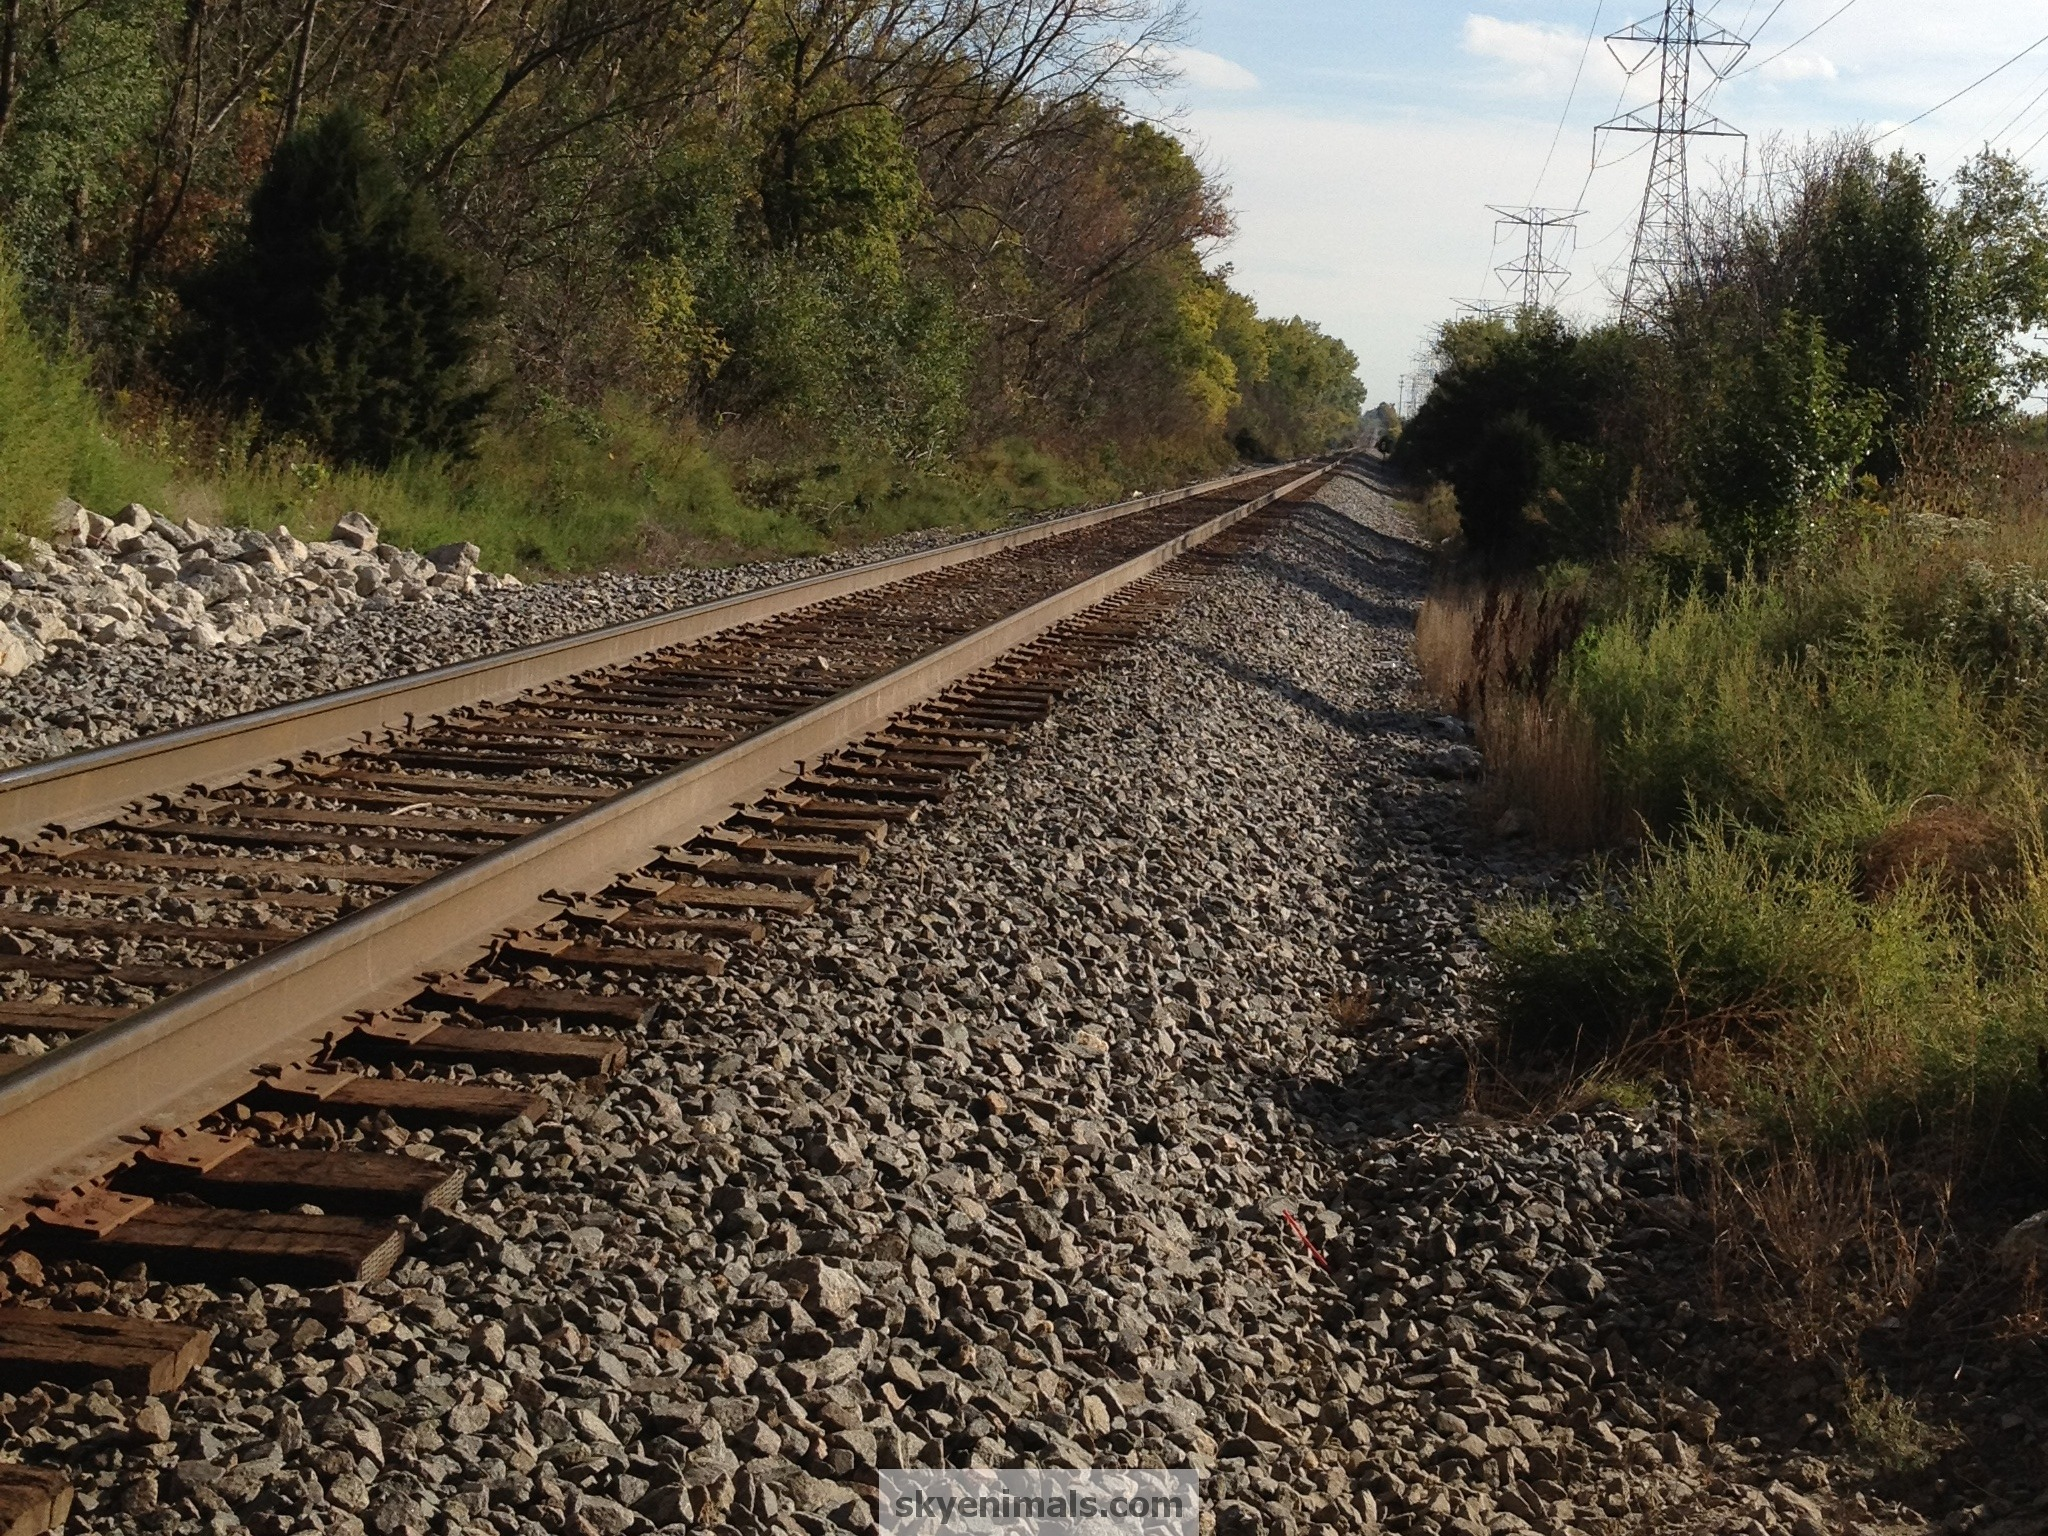 Free Railroads And Trains Wallpaper Images